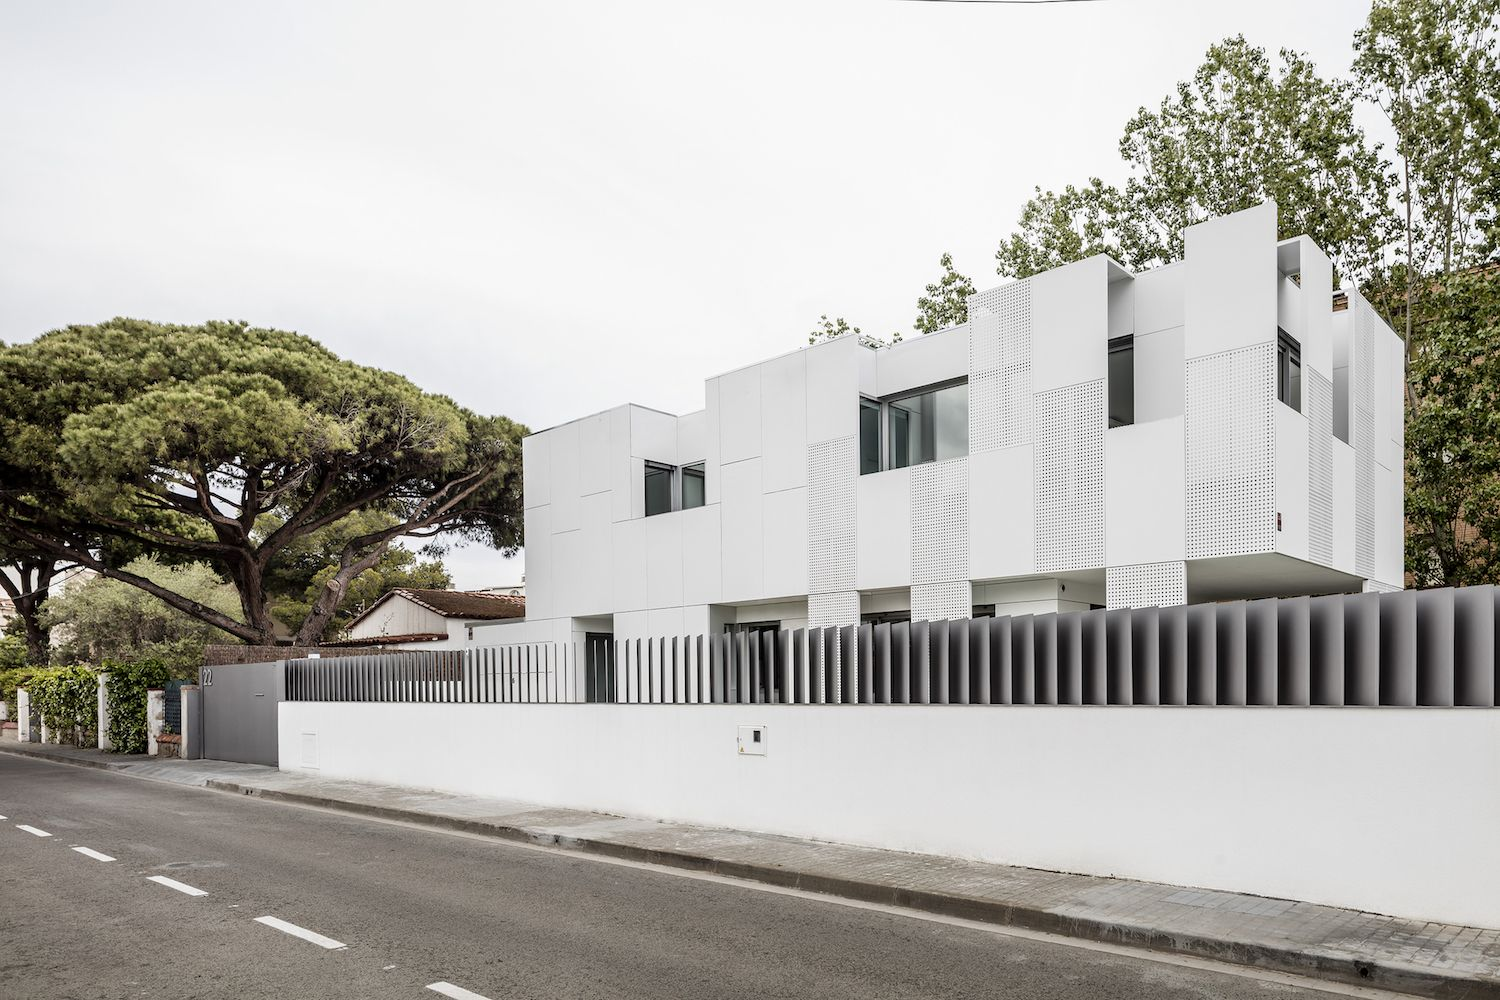 Stunning single family house by Ral architects in Spain - CAANdesign ...